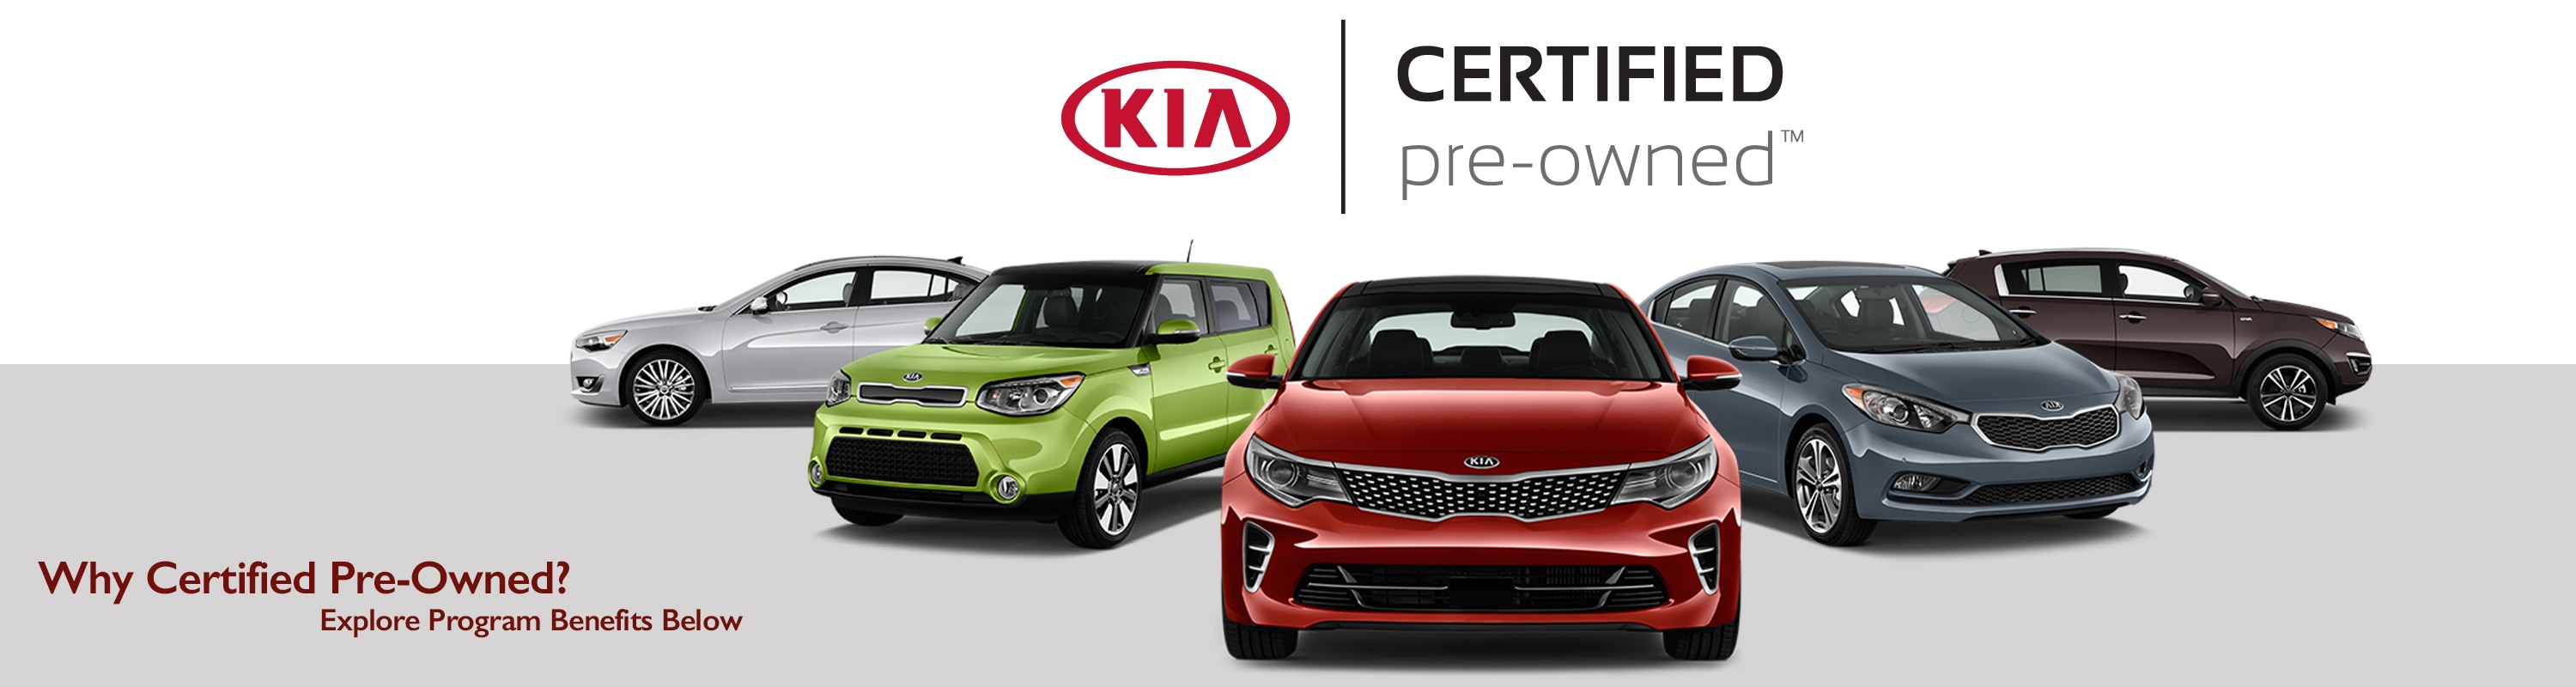 Kia Lafayette La >> Certified Pre-Owned KIA For Sale Lafayette, LA | Sterling Kia